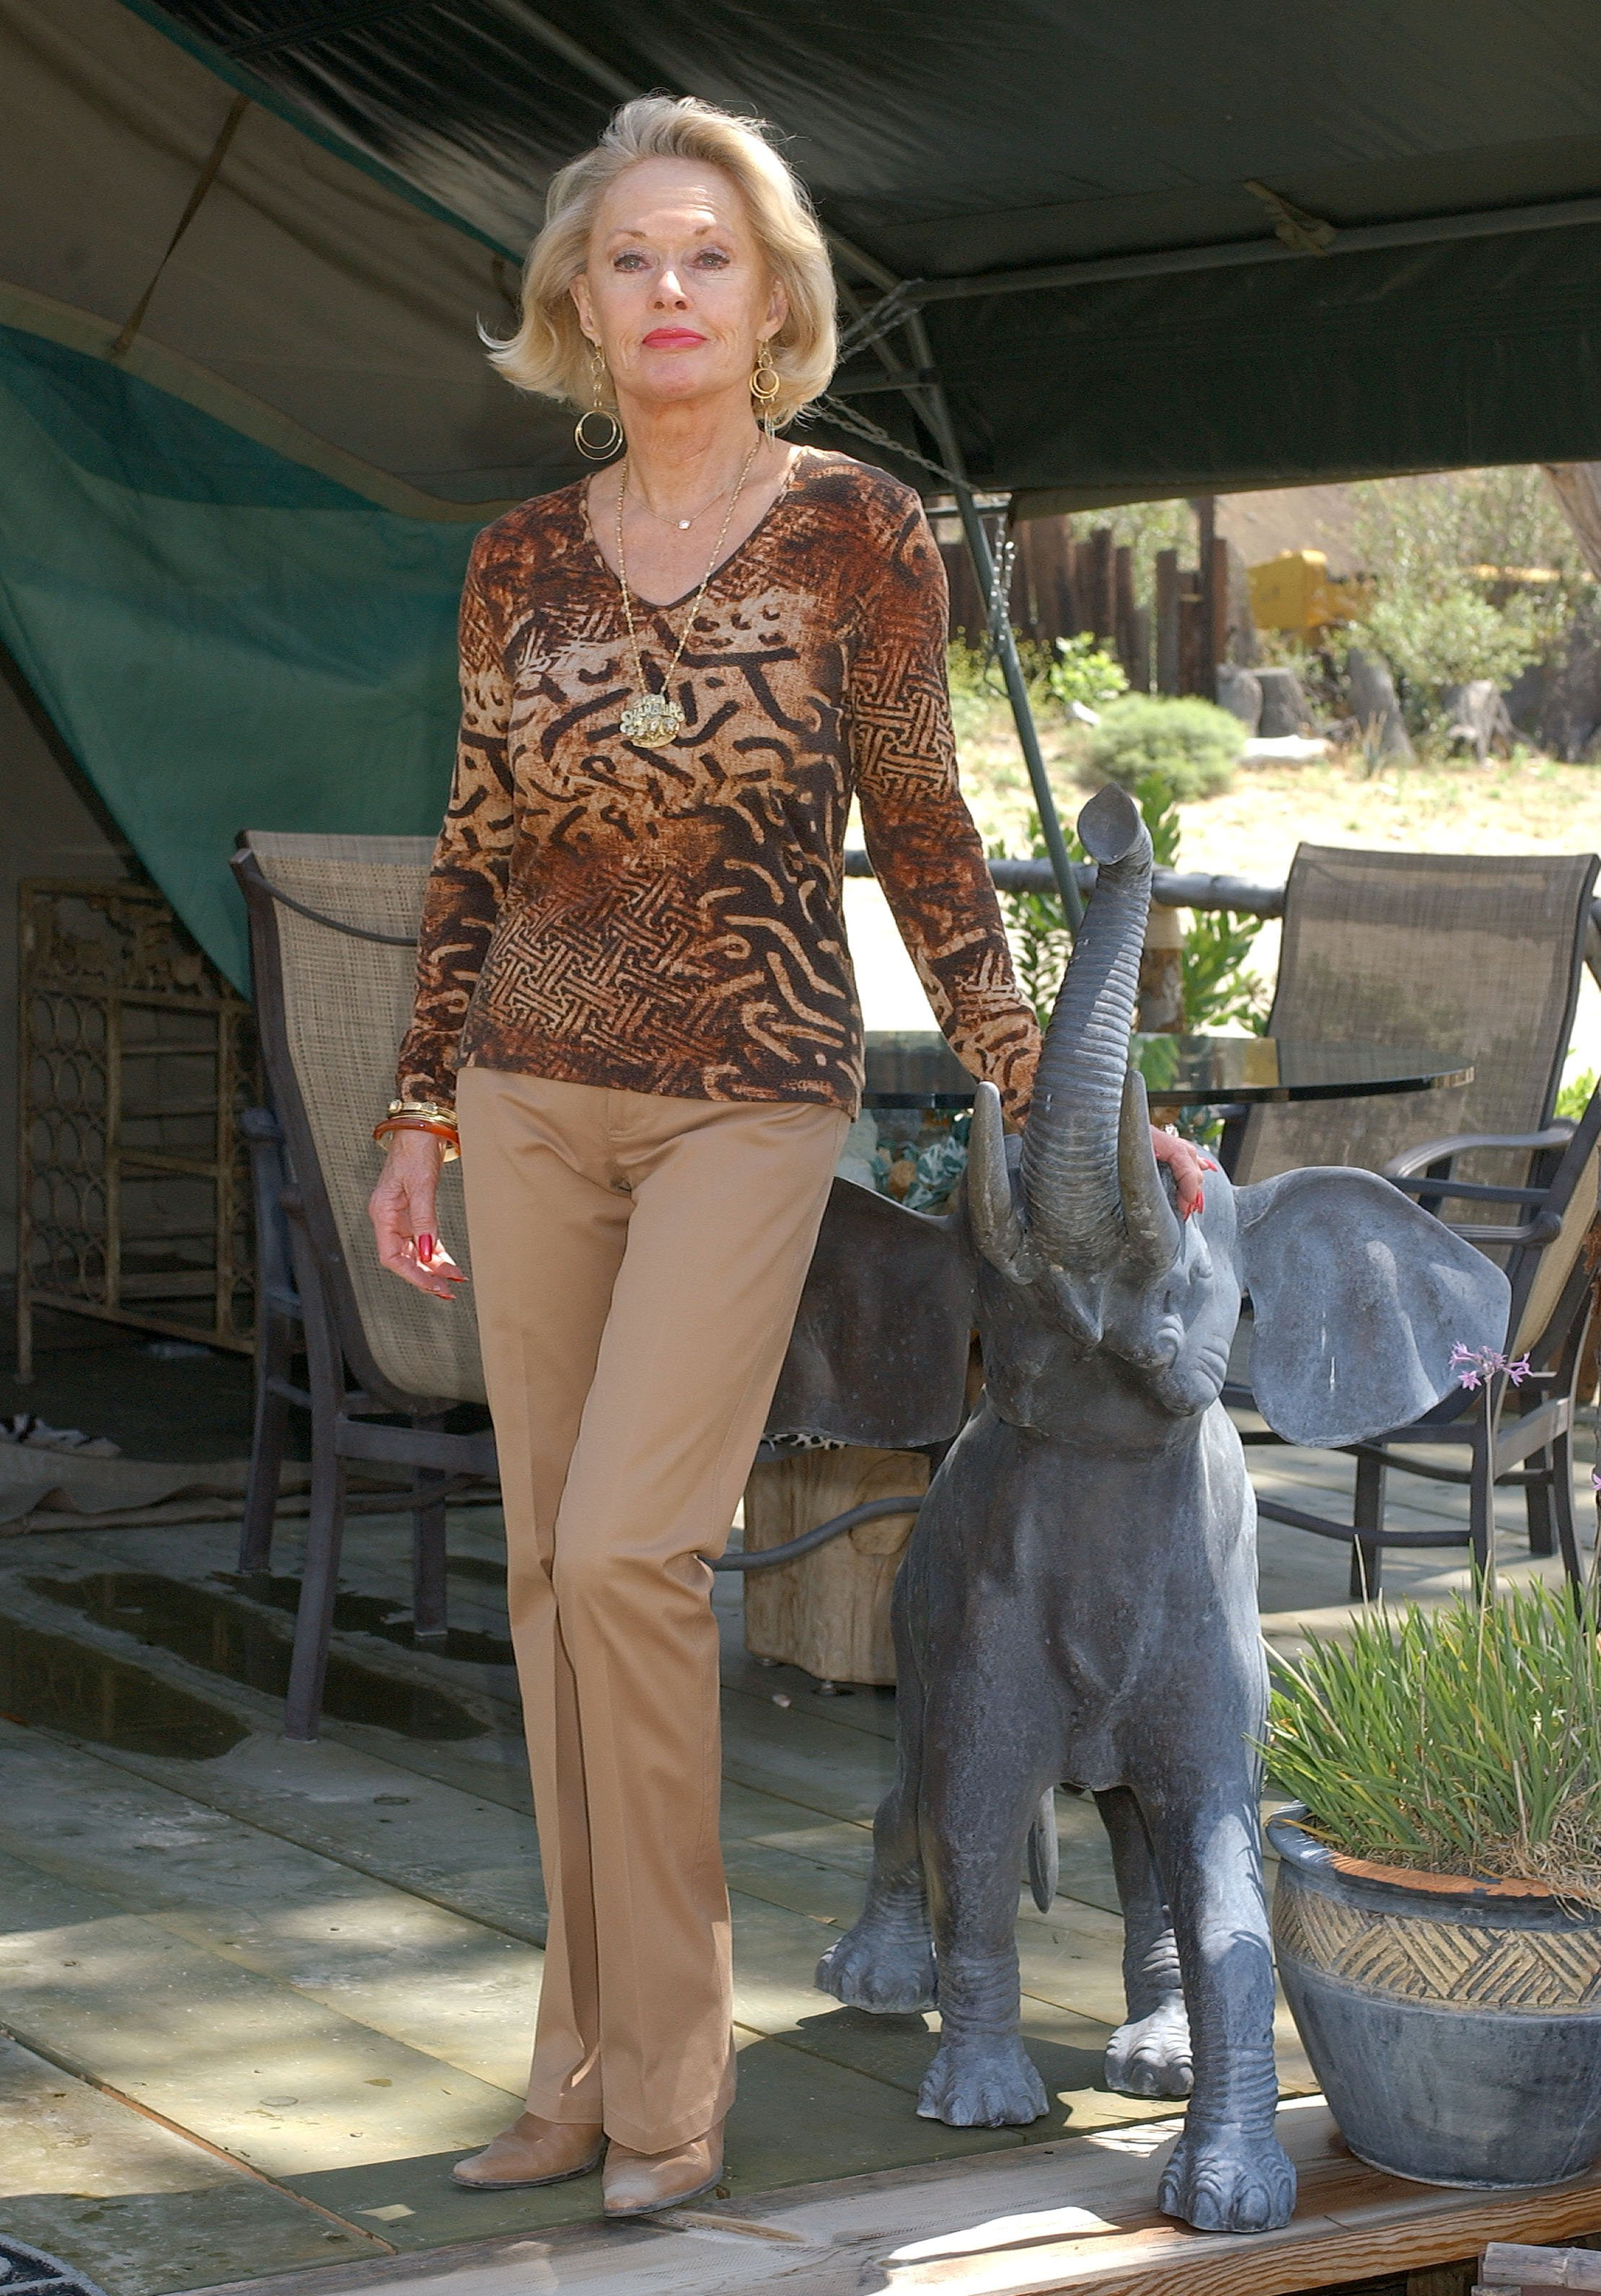 Tippi Hedren during ROAR for Wildlife Global Conference at The Shambala Preserve in Acton, California, United States. | Photo: Getty Images